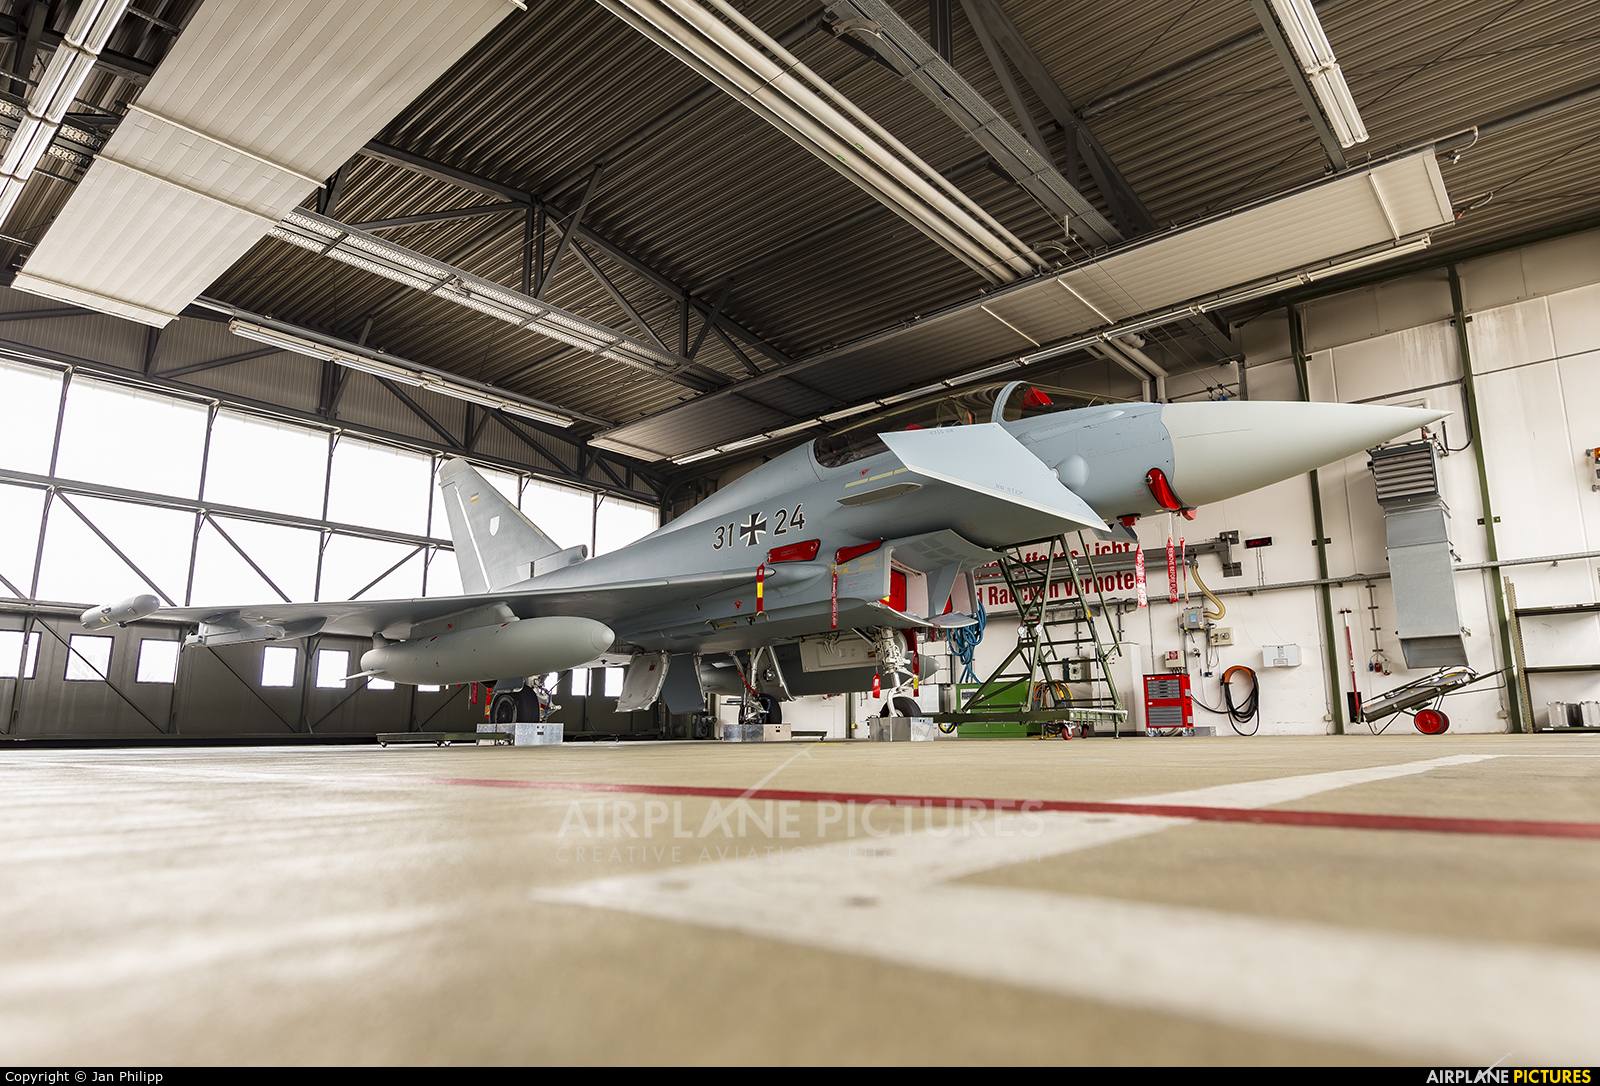 Germany - Air Force 31+24 aircraft at Rostock - Laage